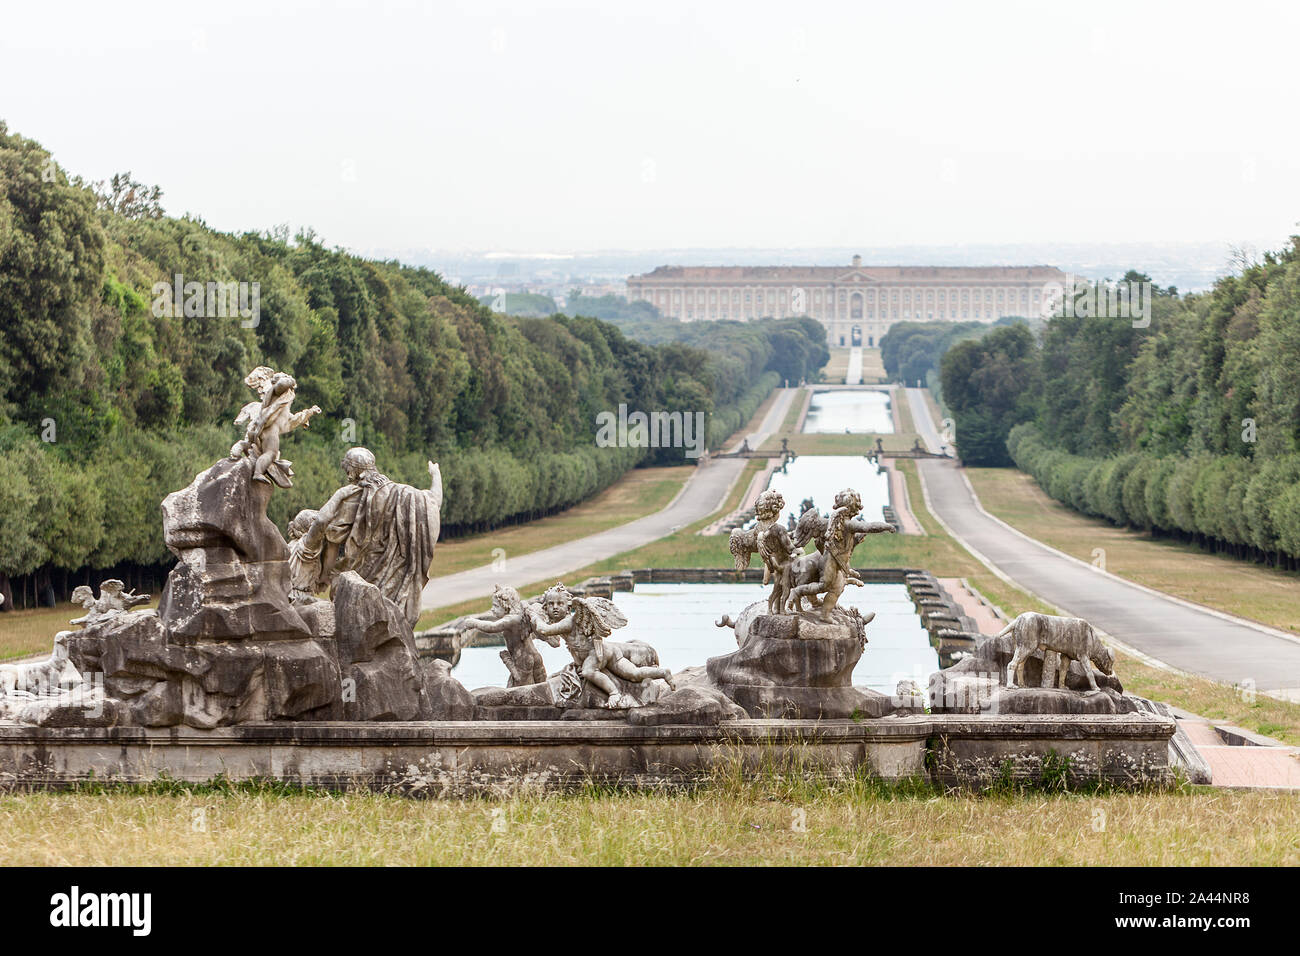 Royal Palace of Caserta It was the largest palace erected in Europe during the 18th century, like to Versailles Palace Stock Photo